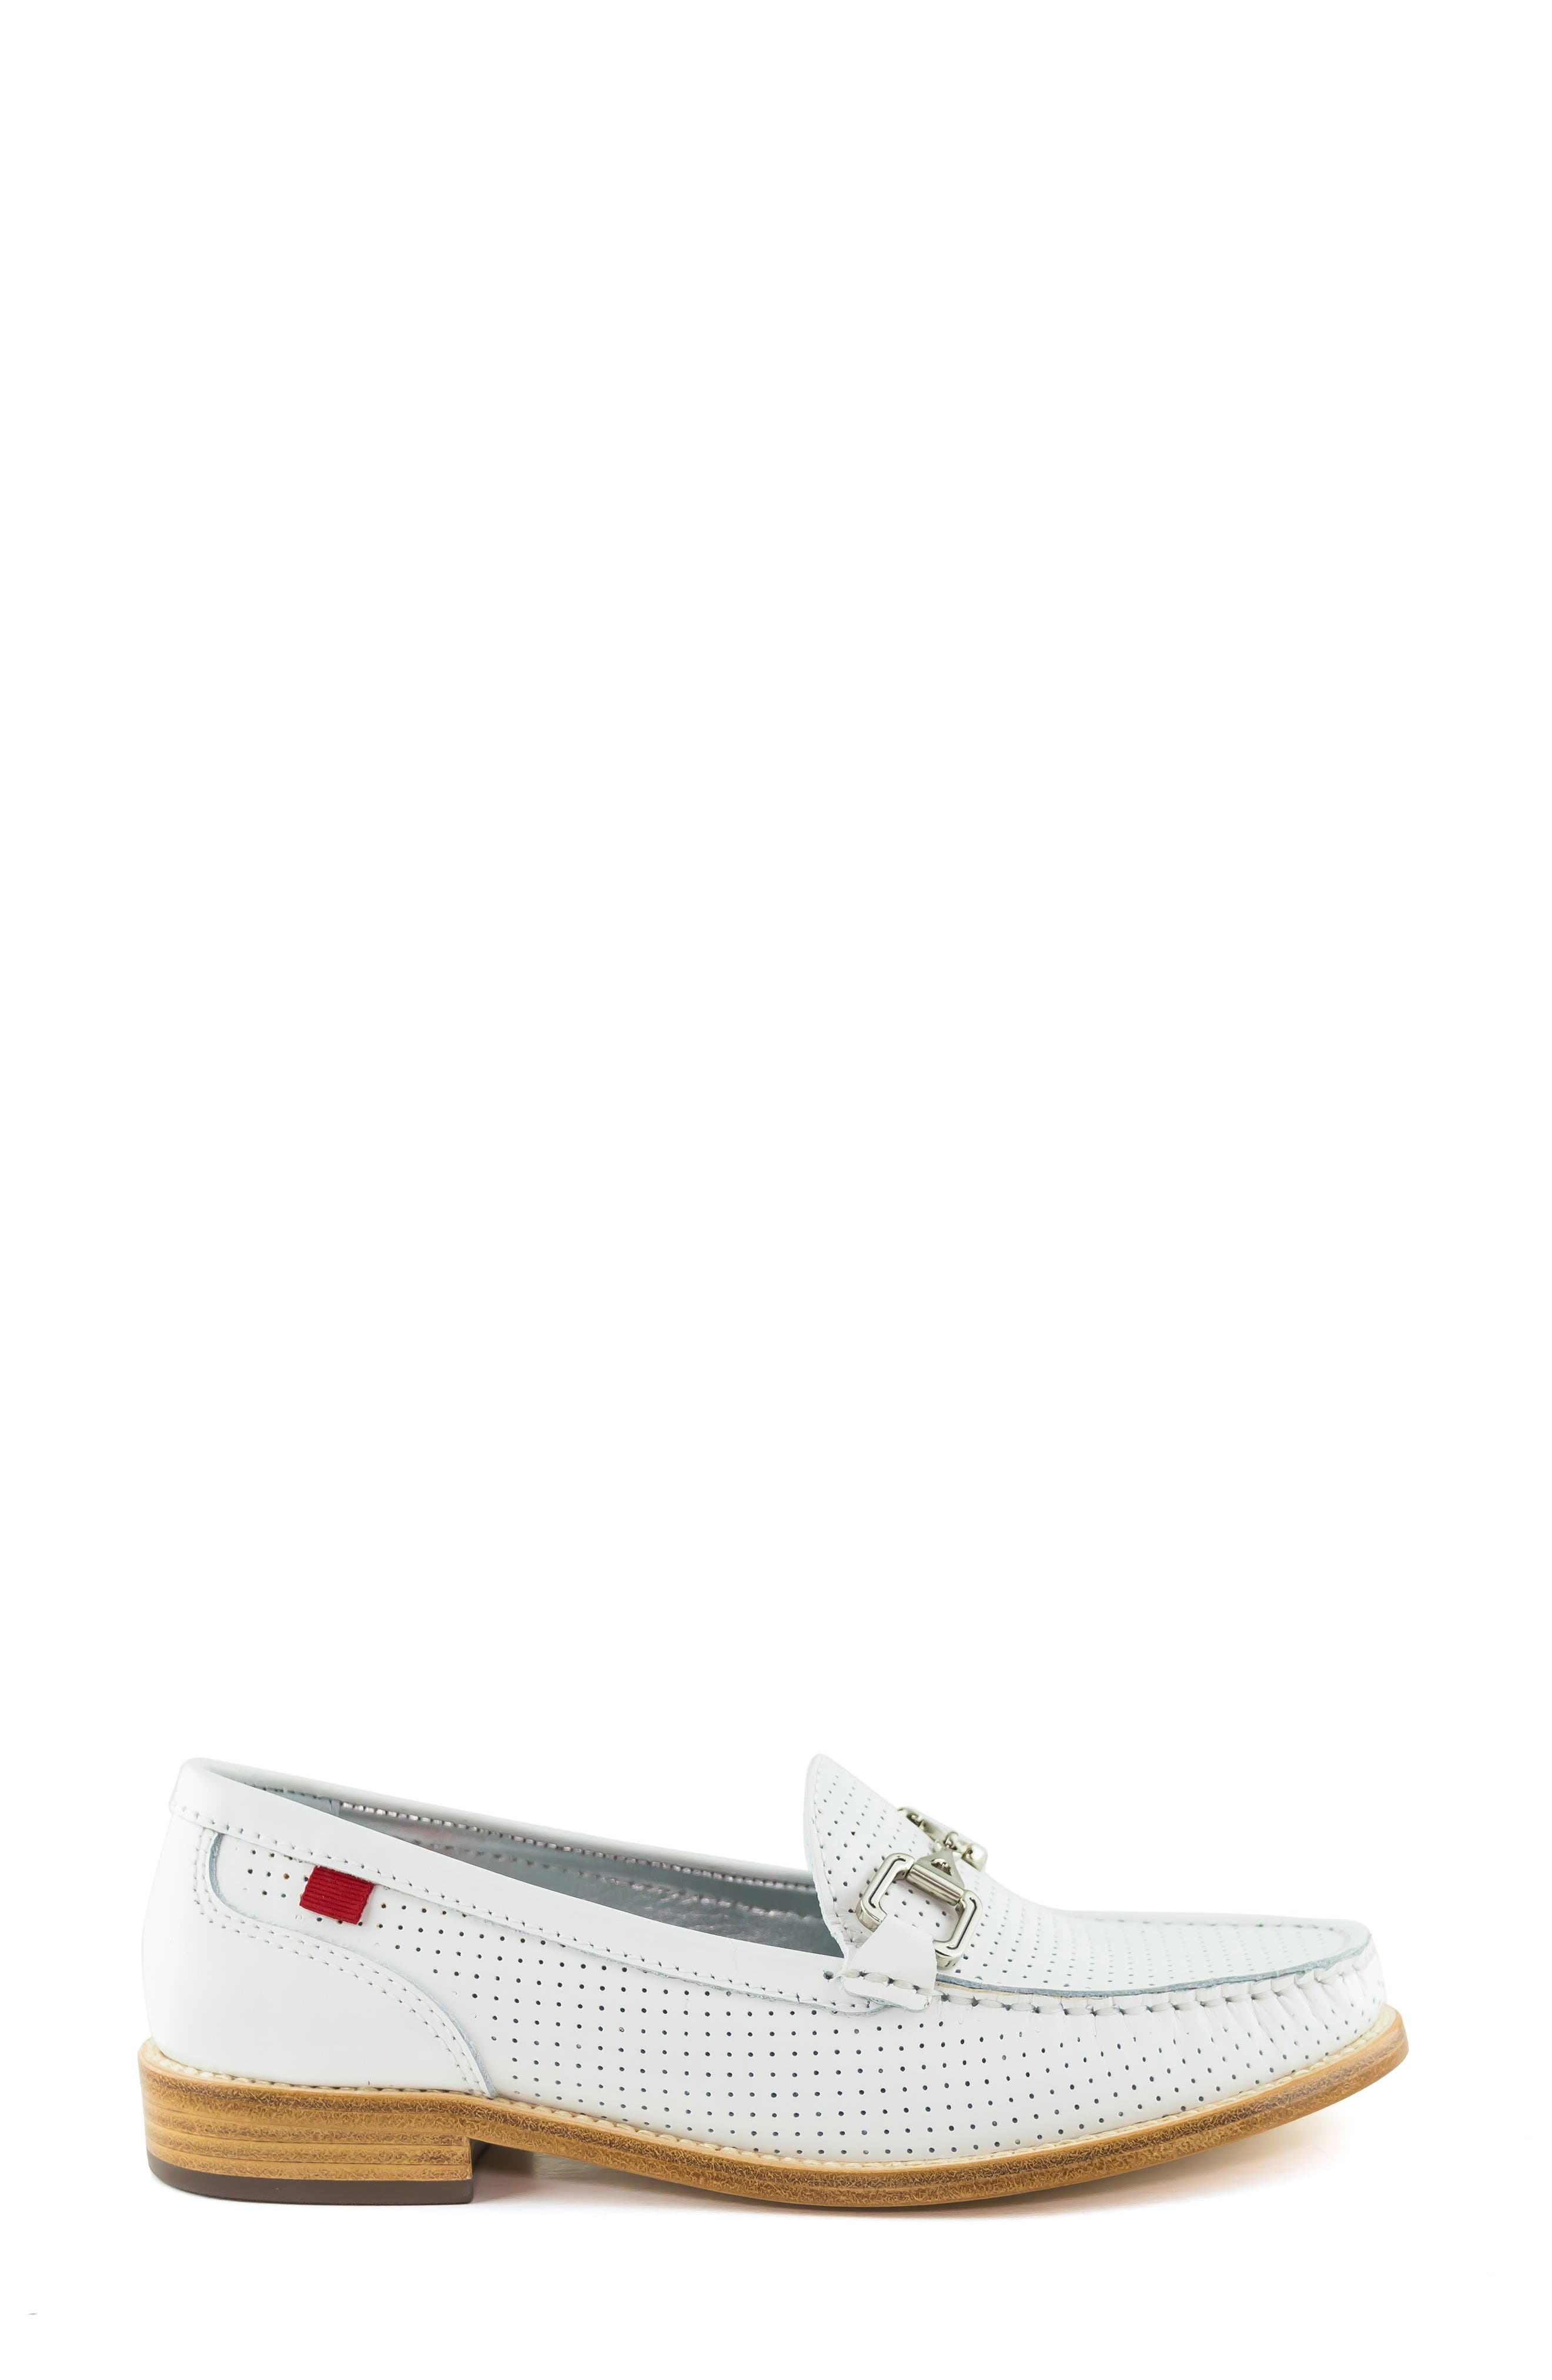 MARC JOSEPH NEW YORK, Park Ave Perforated Loafer, Alternate thumbnail 3, color, WHITE LEATHER